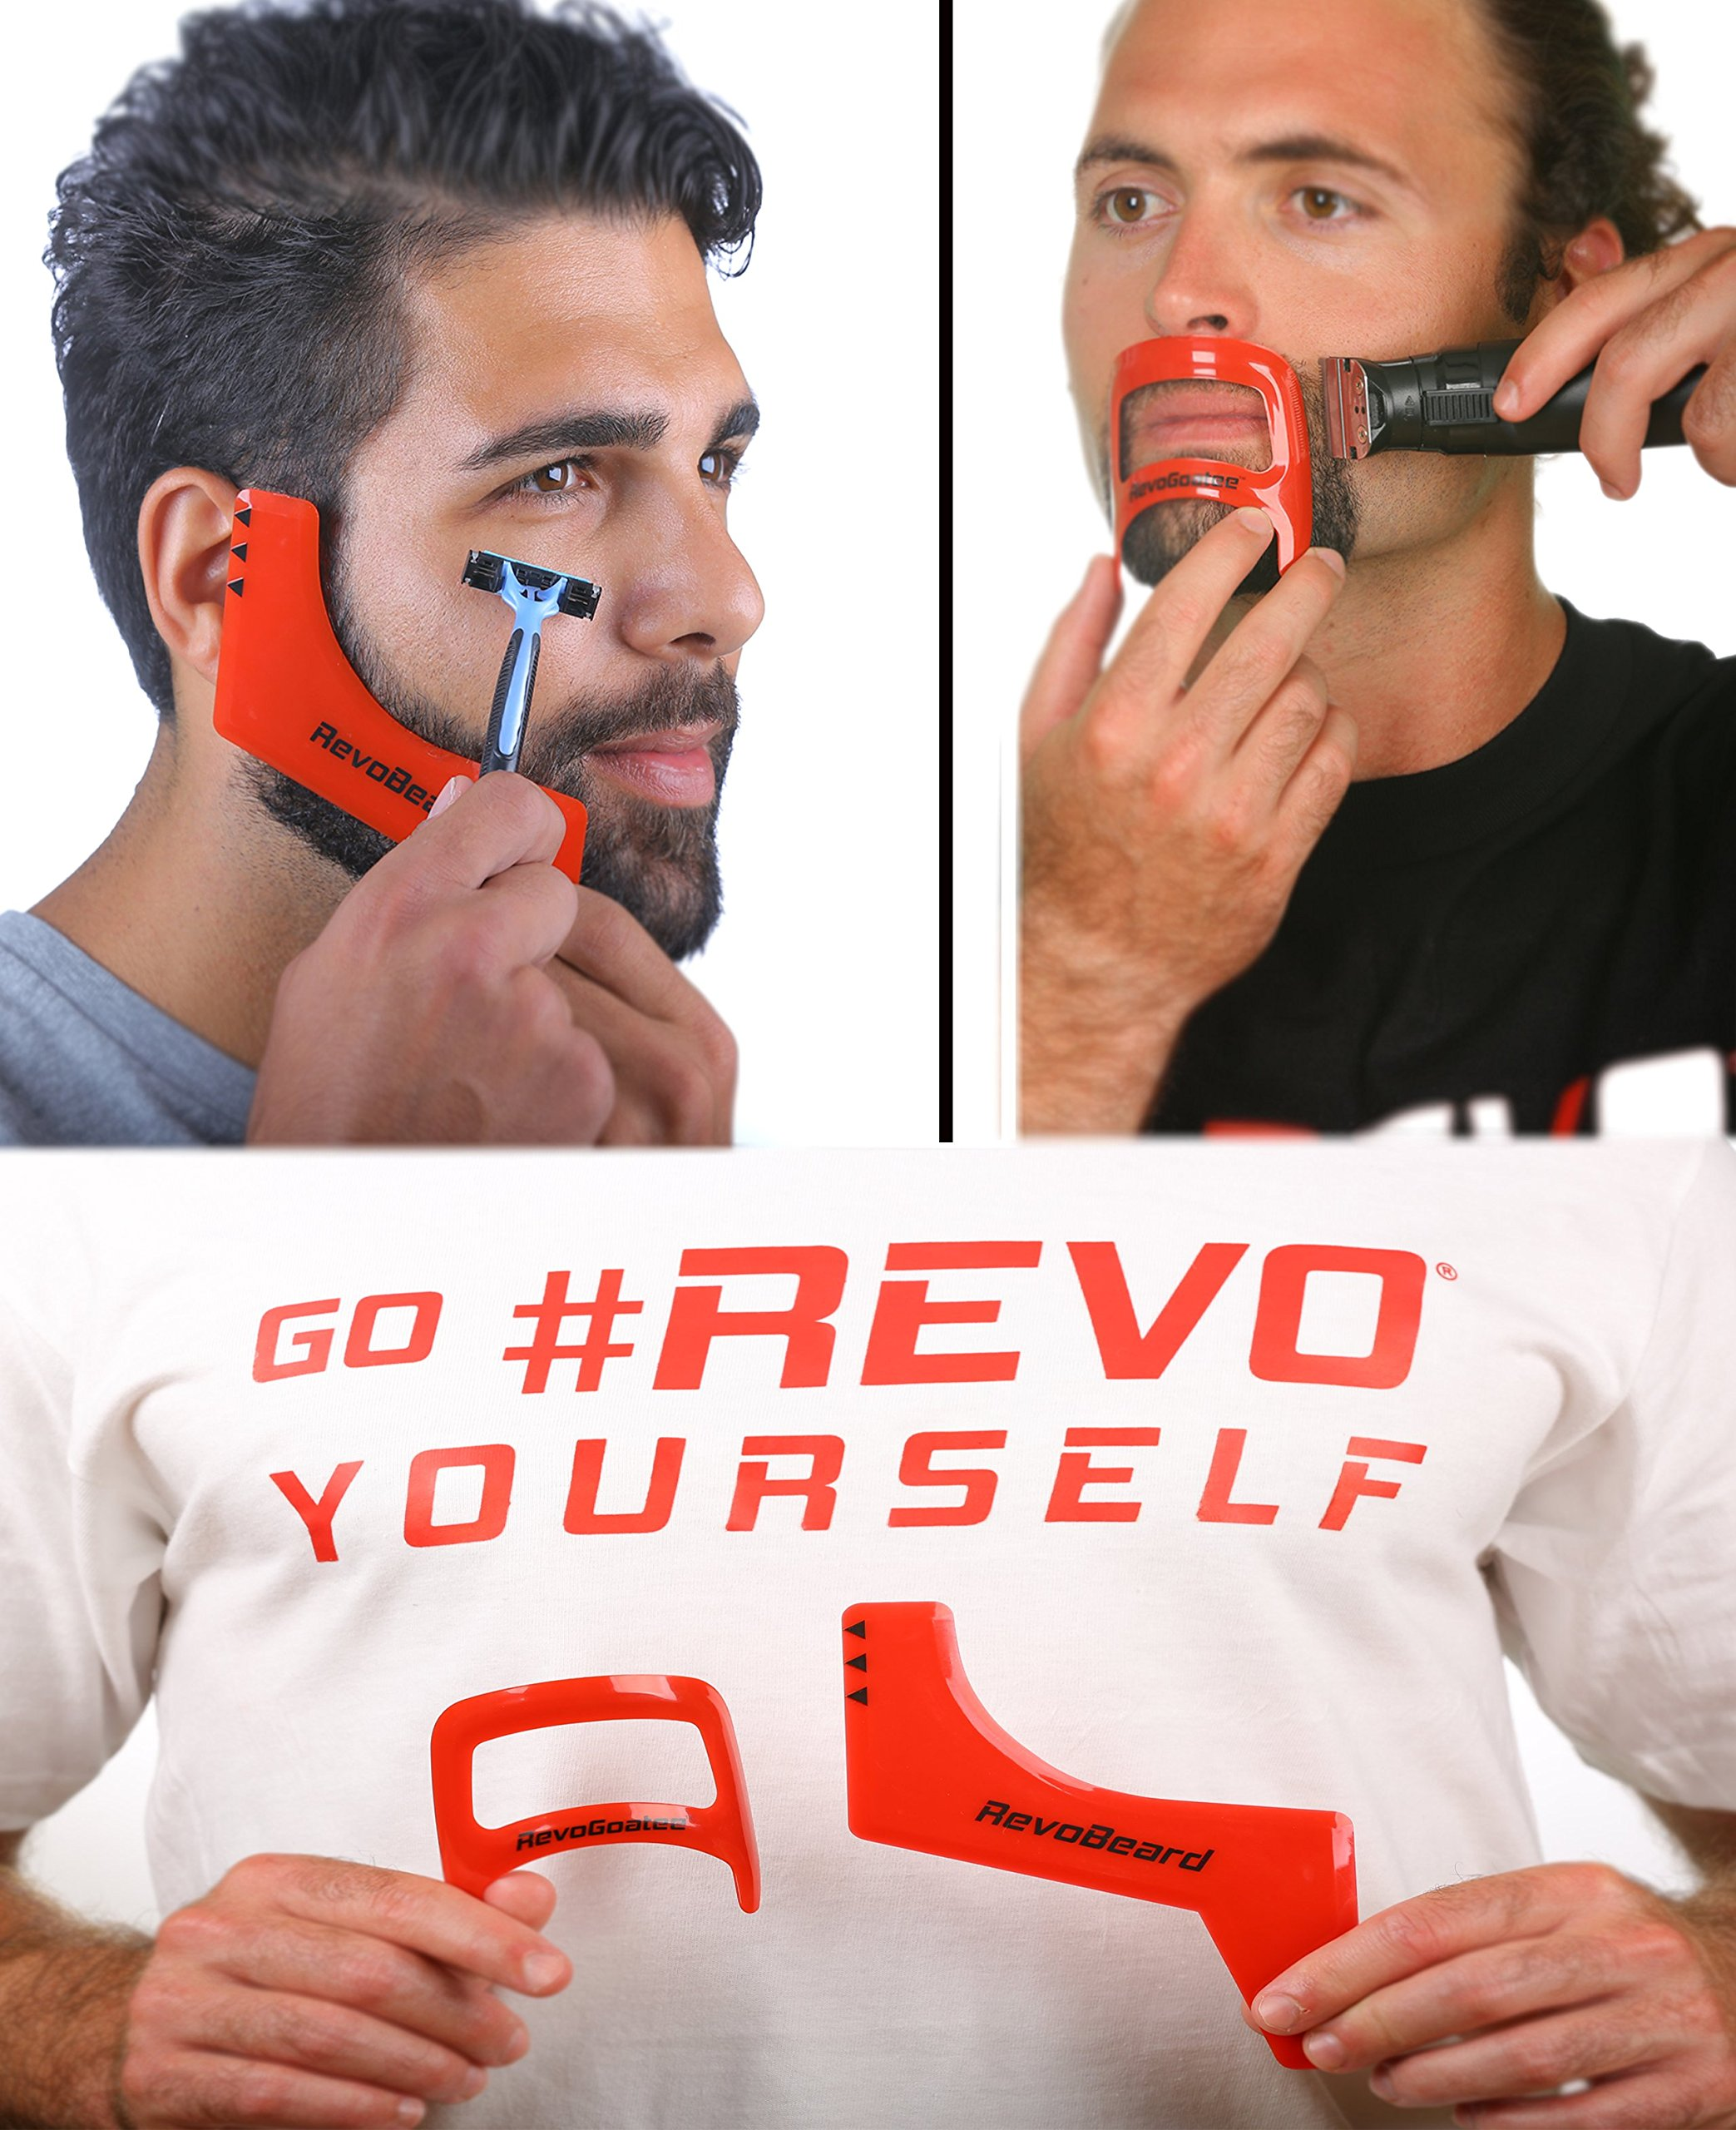 RevoBeard & RevoGoatee - Beard & Goatee Shaping Edge Up Tool Kit - Template for Shaving, Trimming and Lineup - Self Cut Guide Stencil - Mens Grooming Set - Use W/Beard Trimmer or Hair Clippers